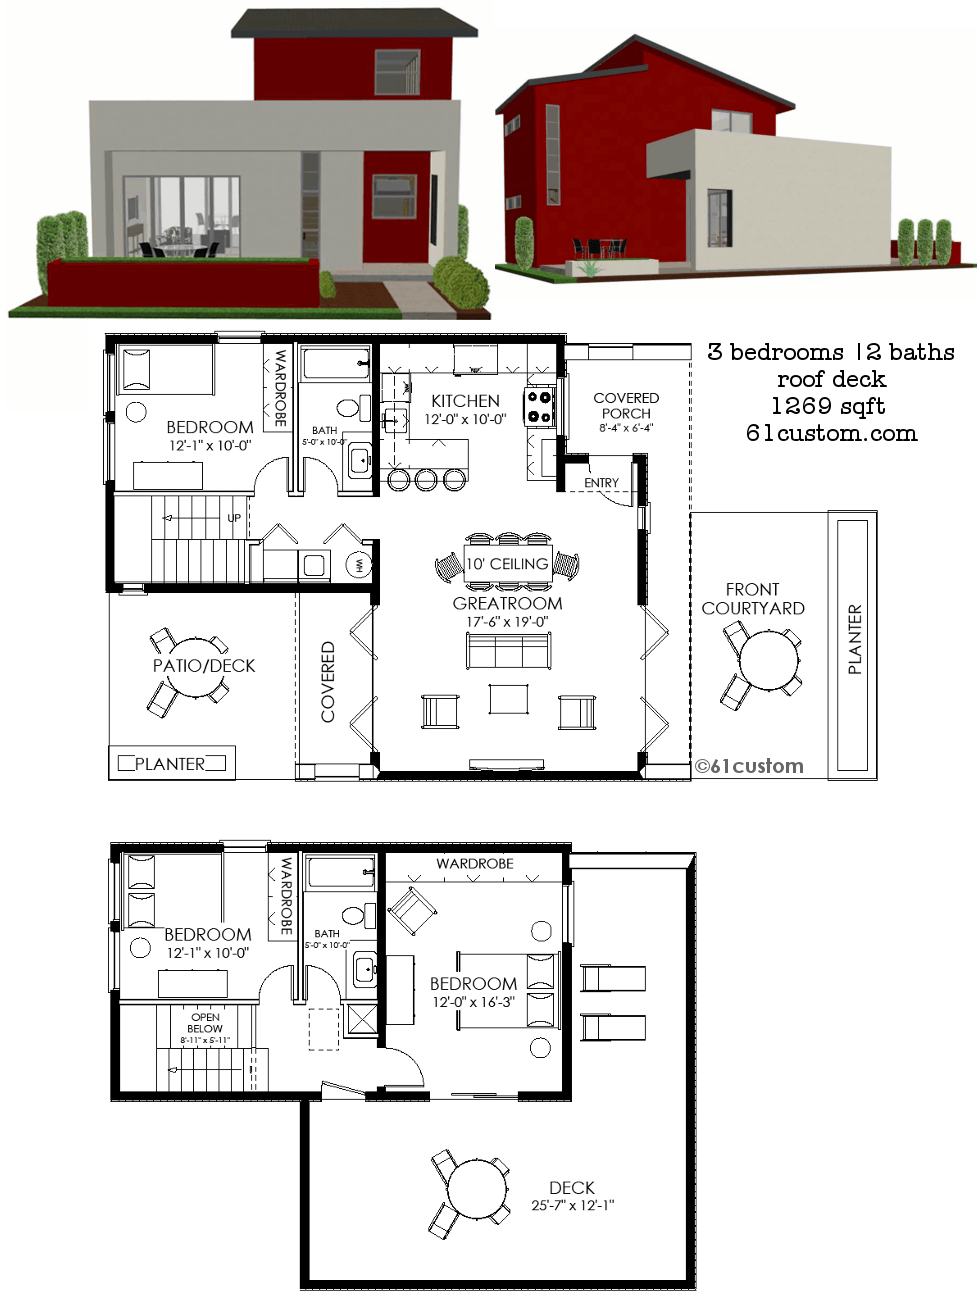 Contemporary small house plan 61custom contemporary Contemporary home design